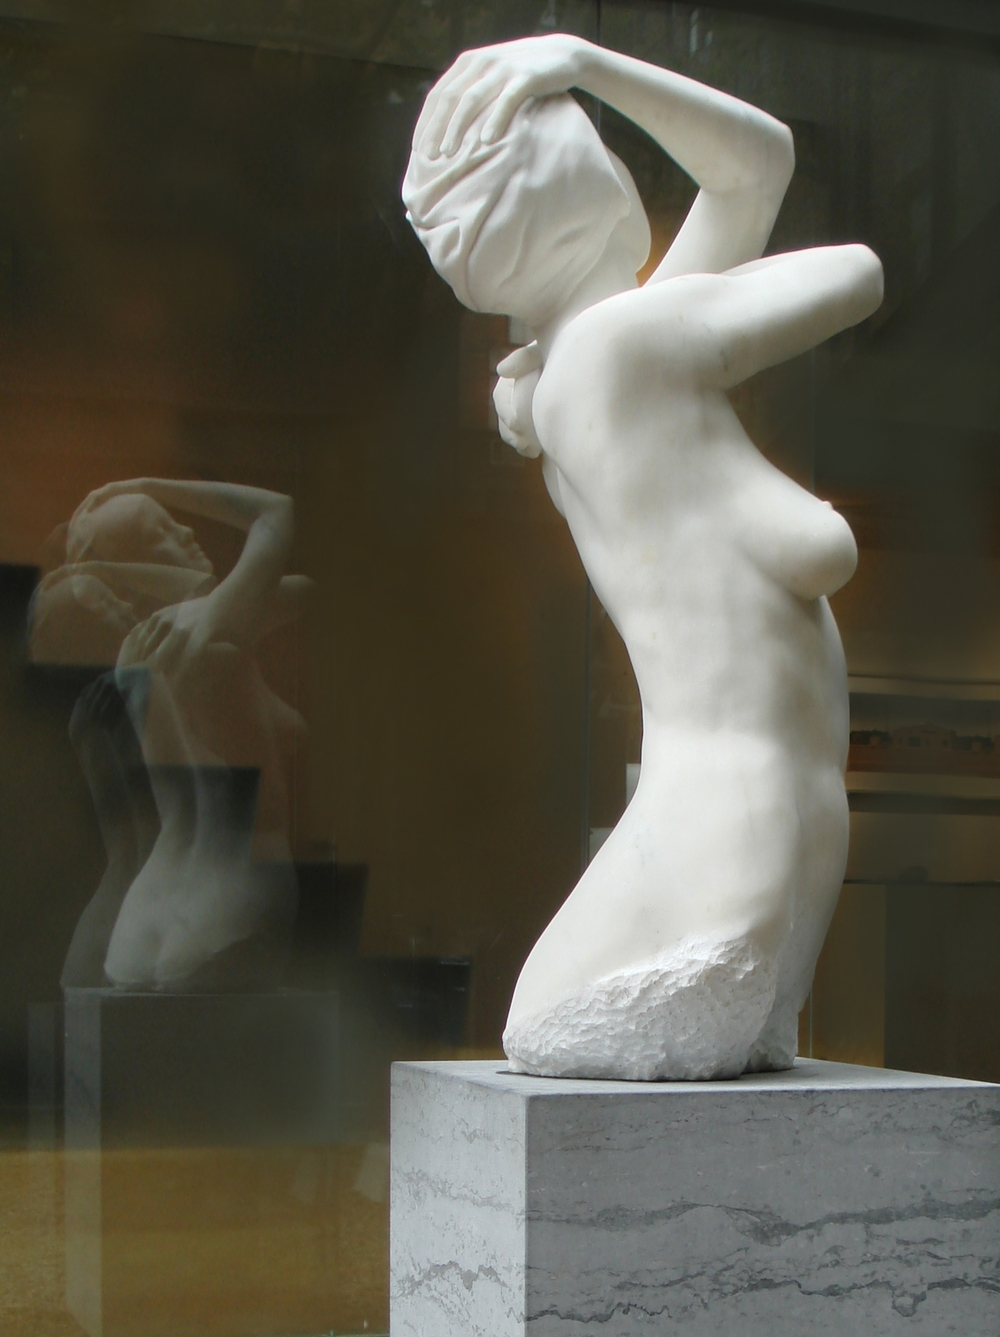 Monumental Shower, 2009. Marble, 51 x 22 x 23 inches